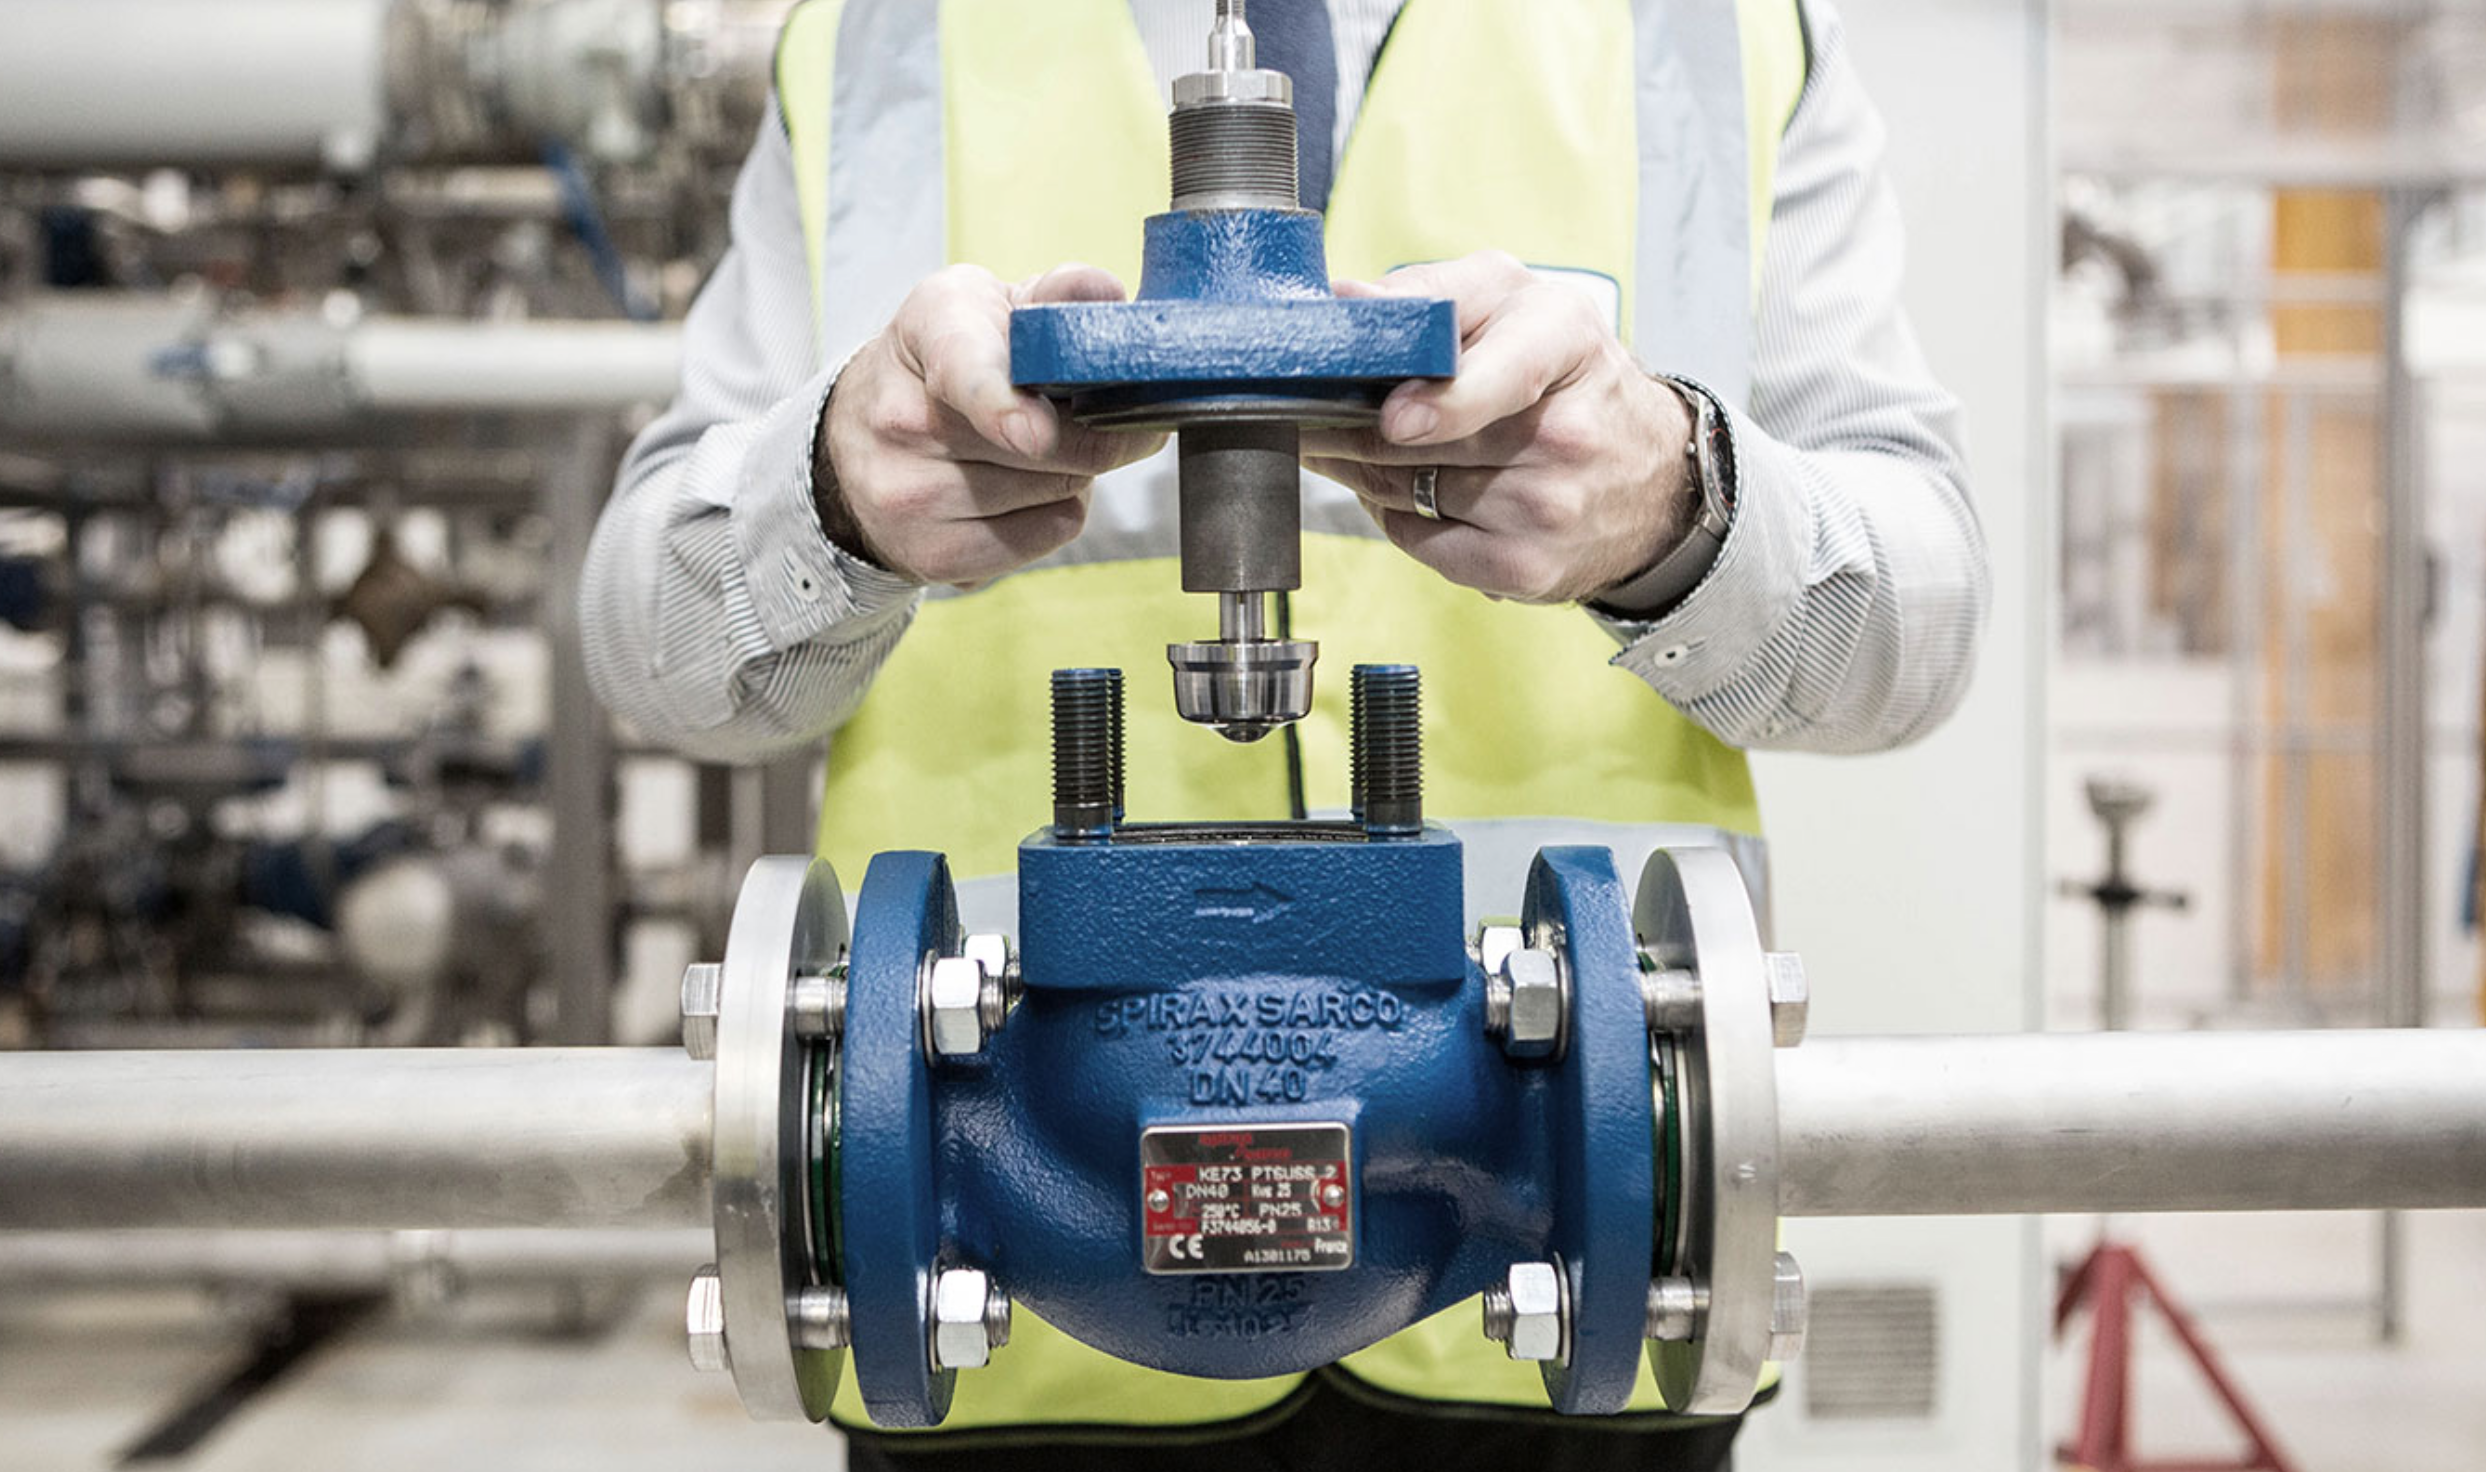 CONTROL VALVES - We offer a comprehensive selection of control valves to meet every application with self-acting temperature control and pressure control.We proudly offer these products from:-Spirax Sarco-Jordan